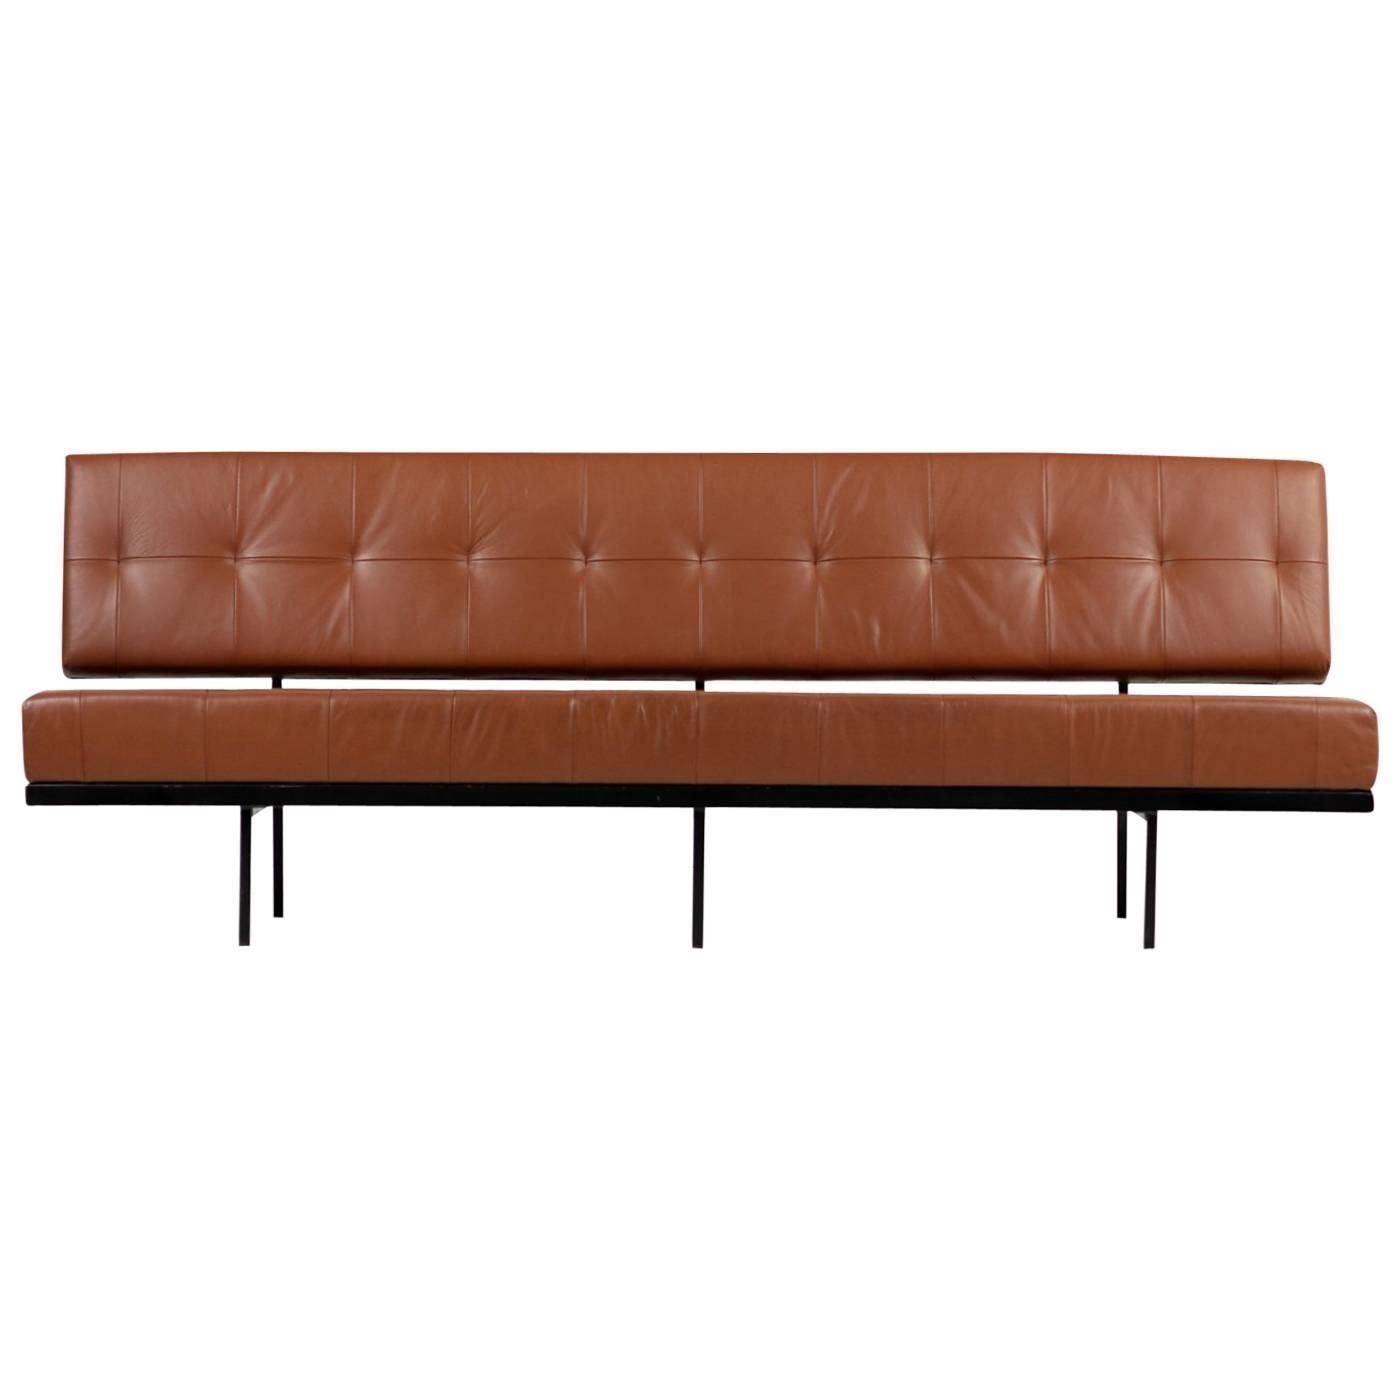 Florence Knoll Sofas – 54 For Sale At 1Stdibs Throughout Florence Knoll Wood Legs Sofas (Image 12 of 20)